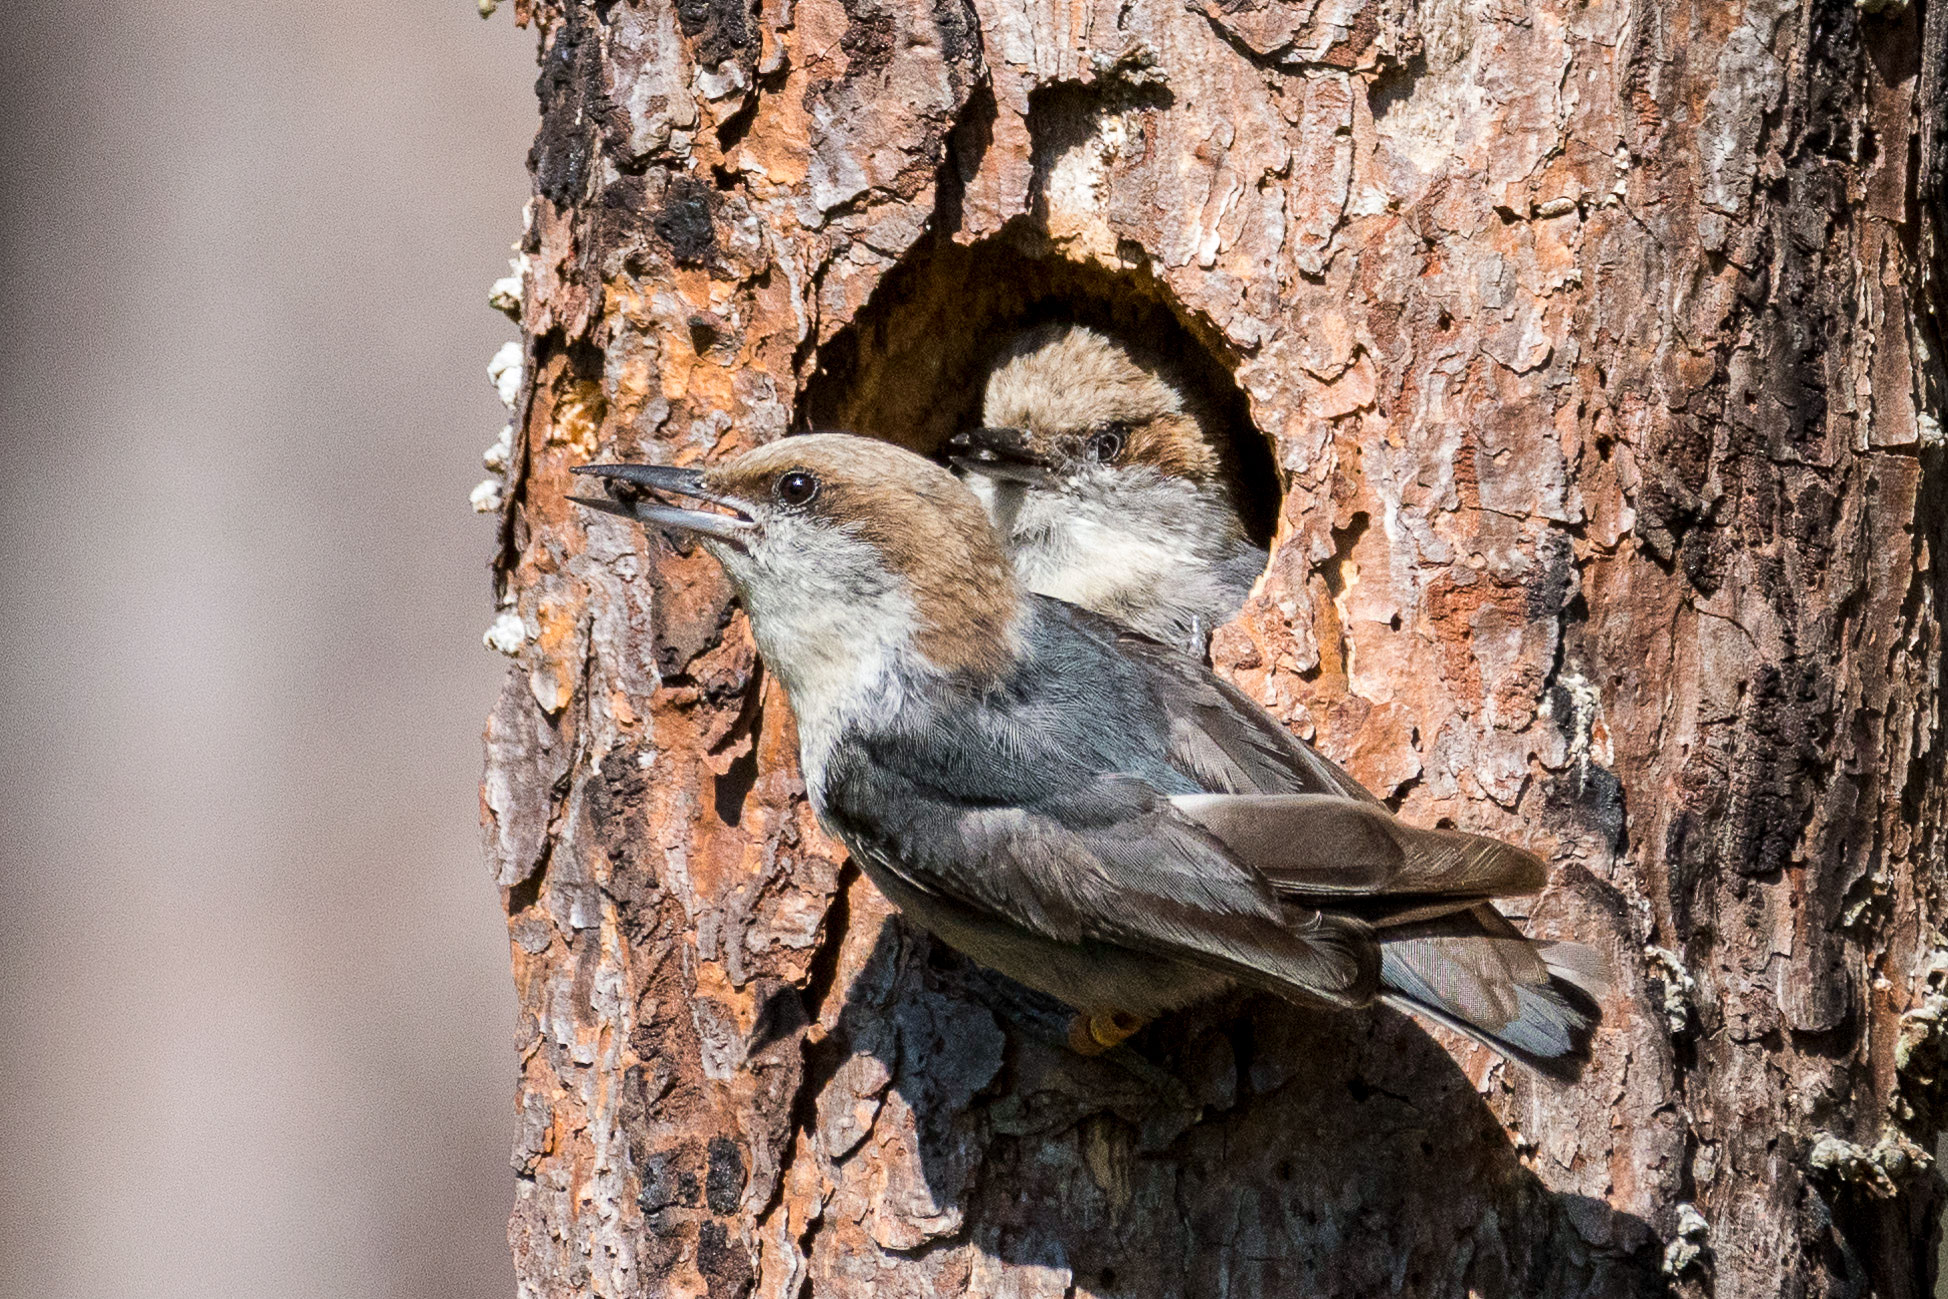 Brown-headed Nuthatches pair up to carve out cavities in pines and woody structures. This shared responsibility makes finding a mate—or host family—all the more important. Brian Lloyd